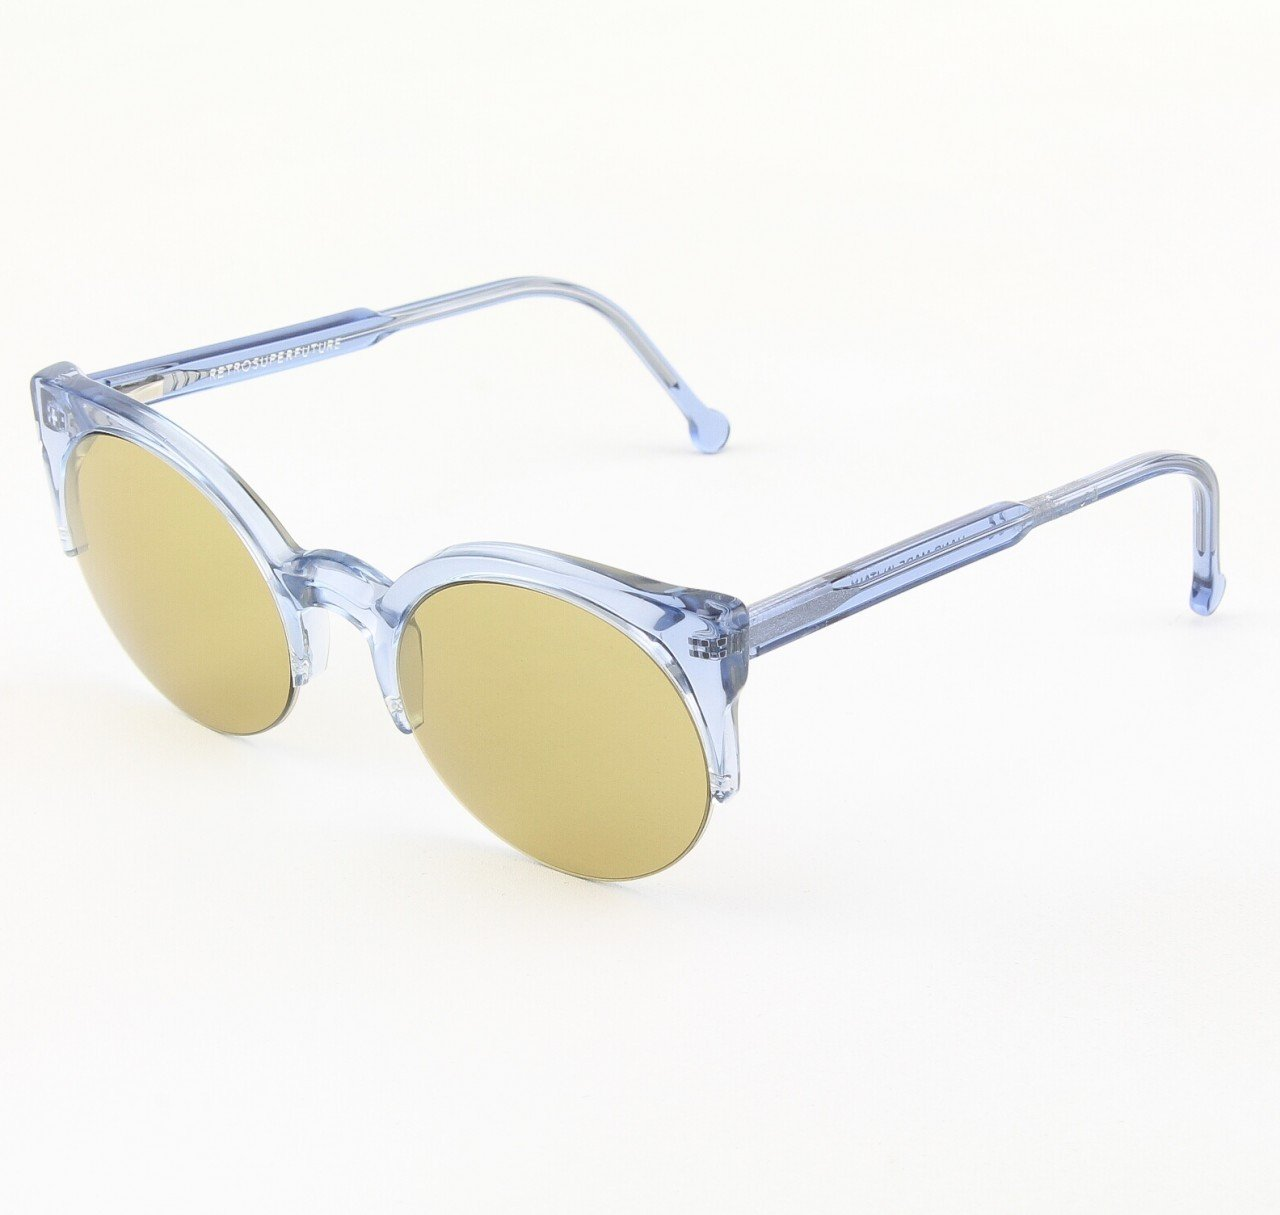 Super Lucia 572/2 Sunglasses Blue Crystal with Yellow Zeiss Lenses by RETROSUPERFUTURE